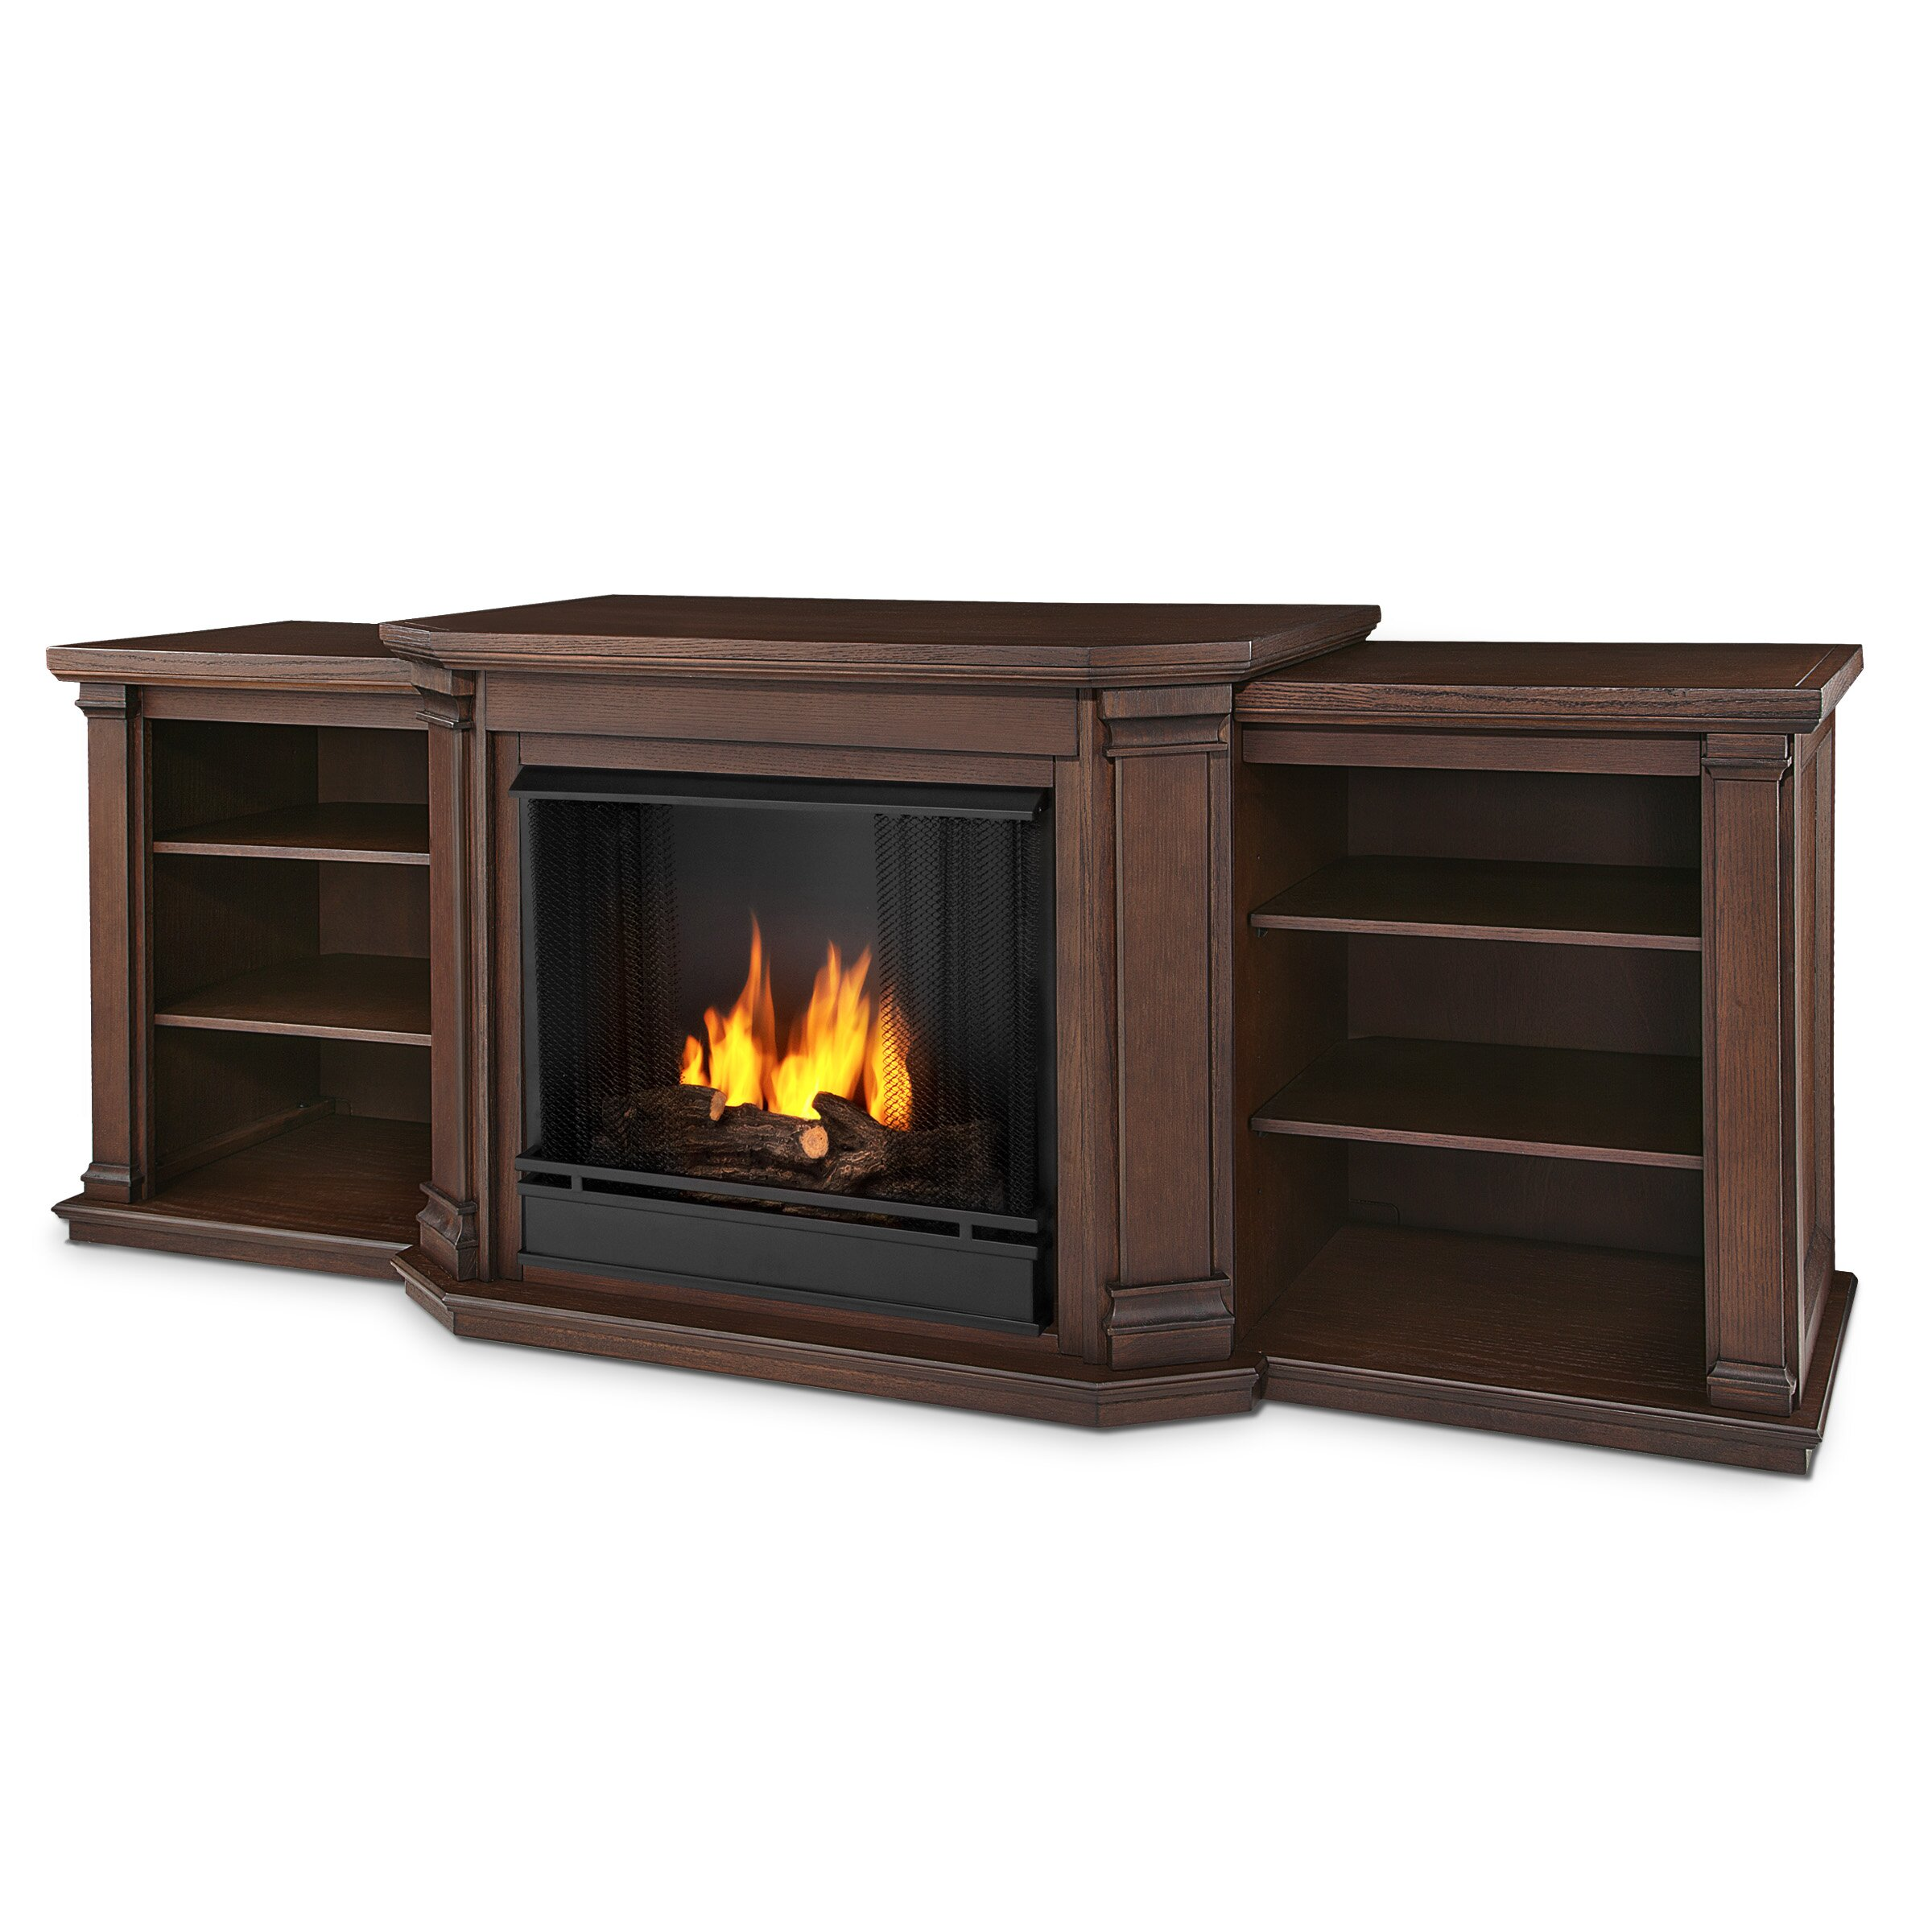 Valmont Tv Stand With Gel Fuel Fireplace Wayfair